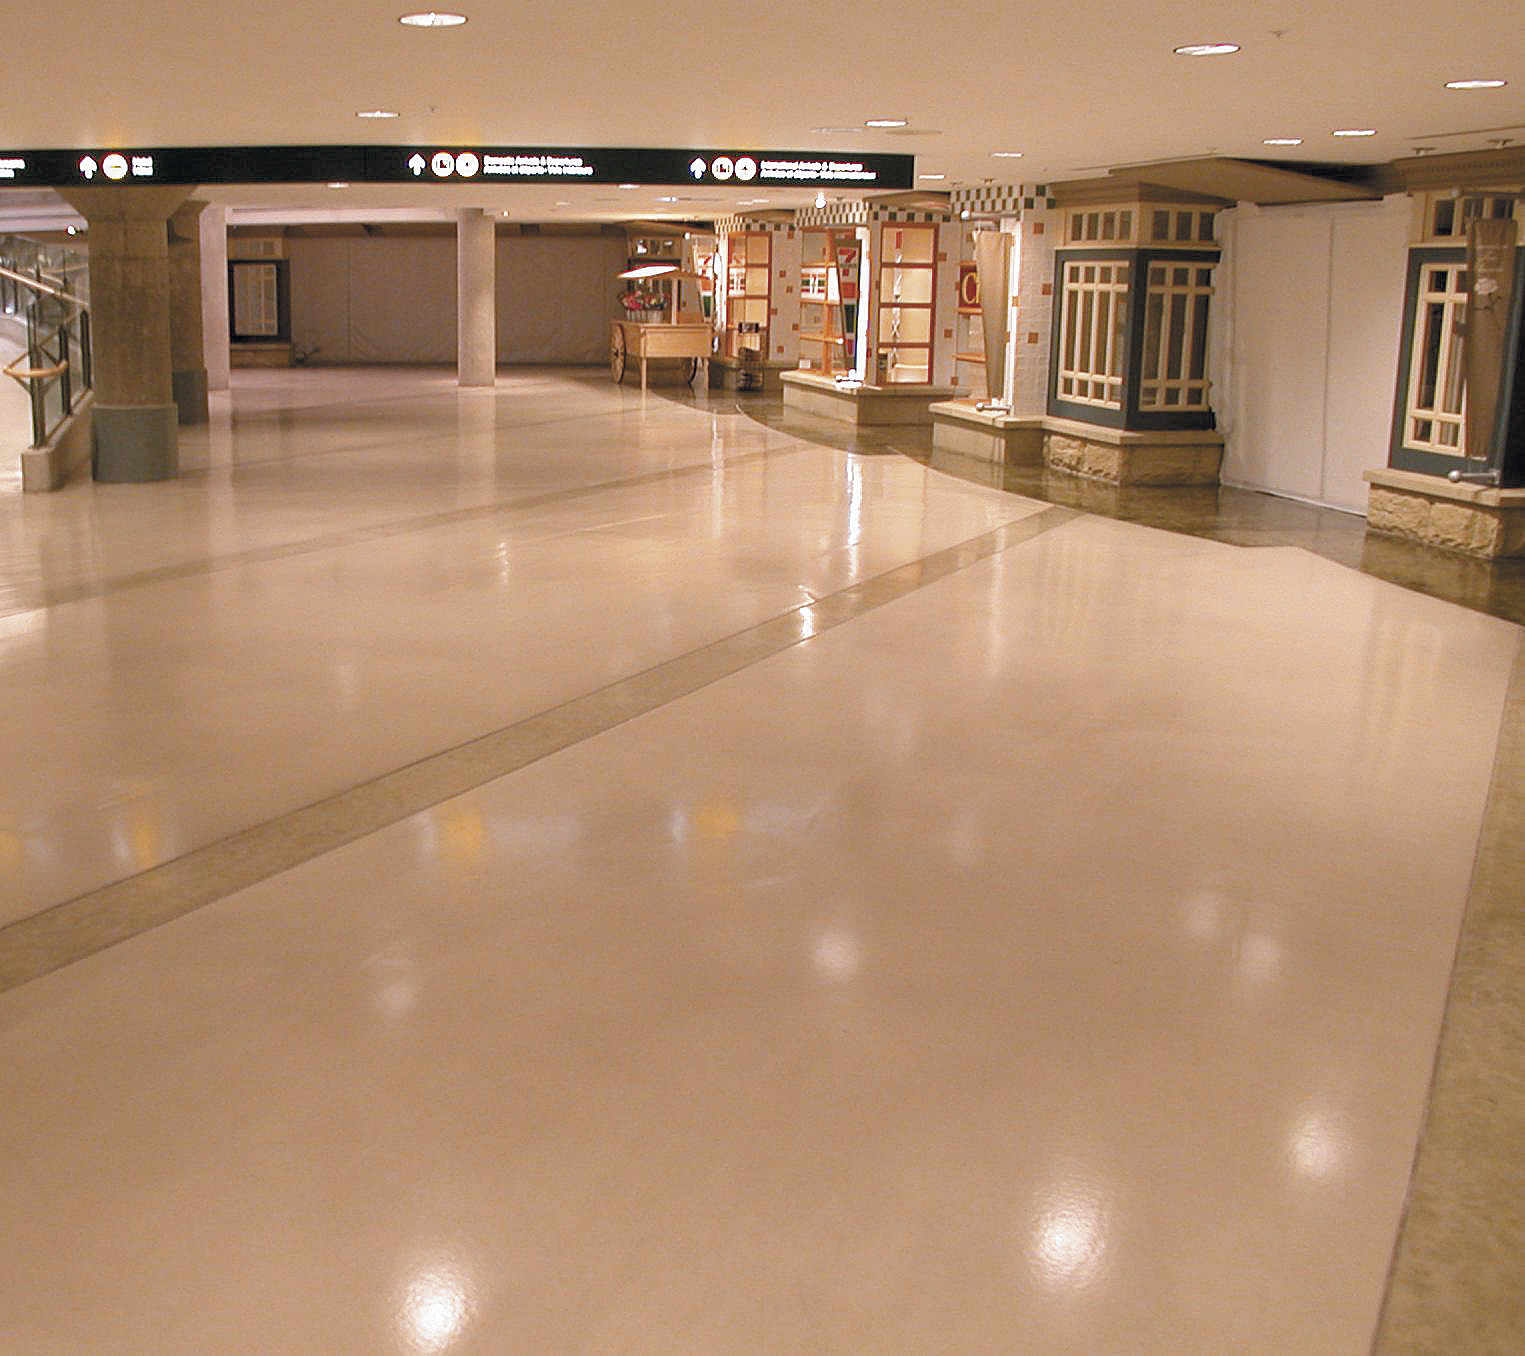 Vancouver International Airport Domestic Terminal gets a major renovation with this decorative concrete treatment.